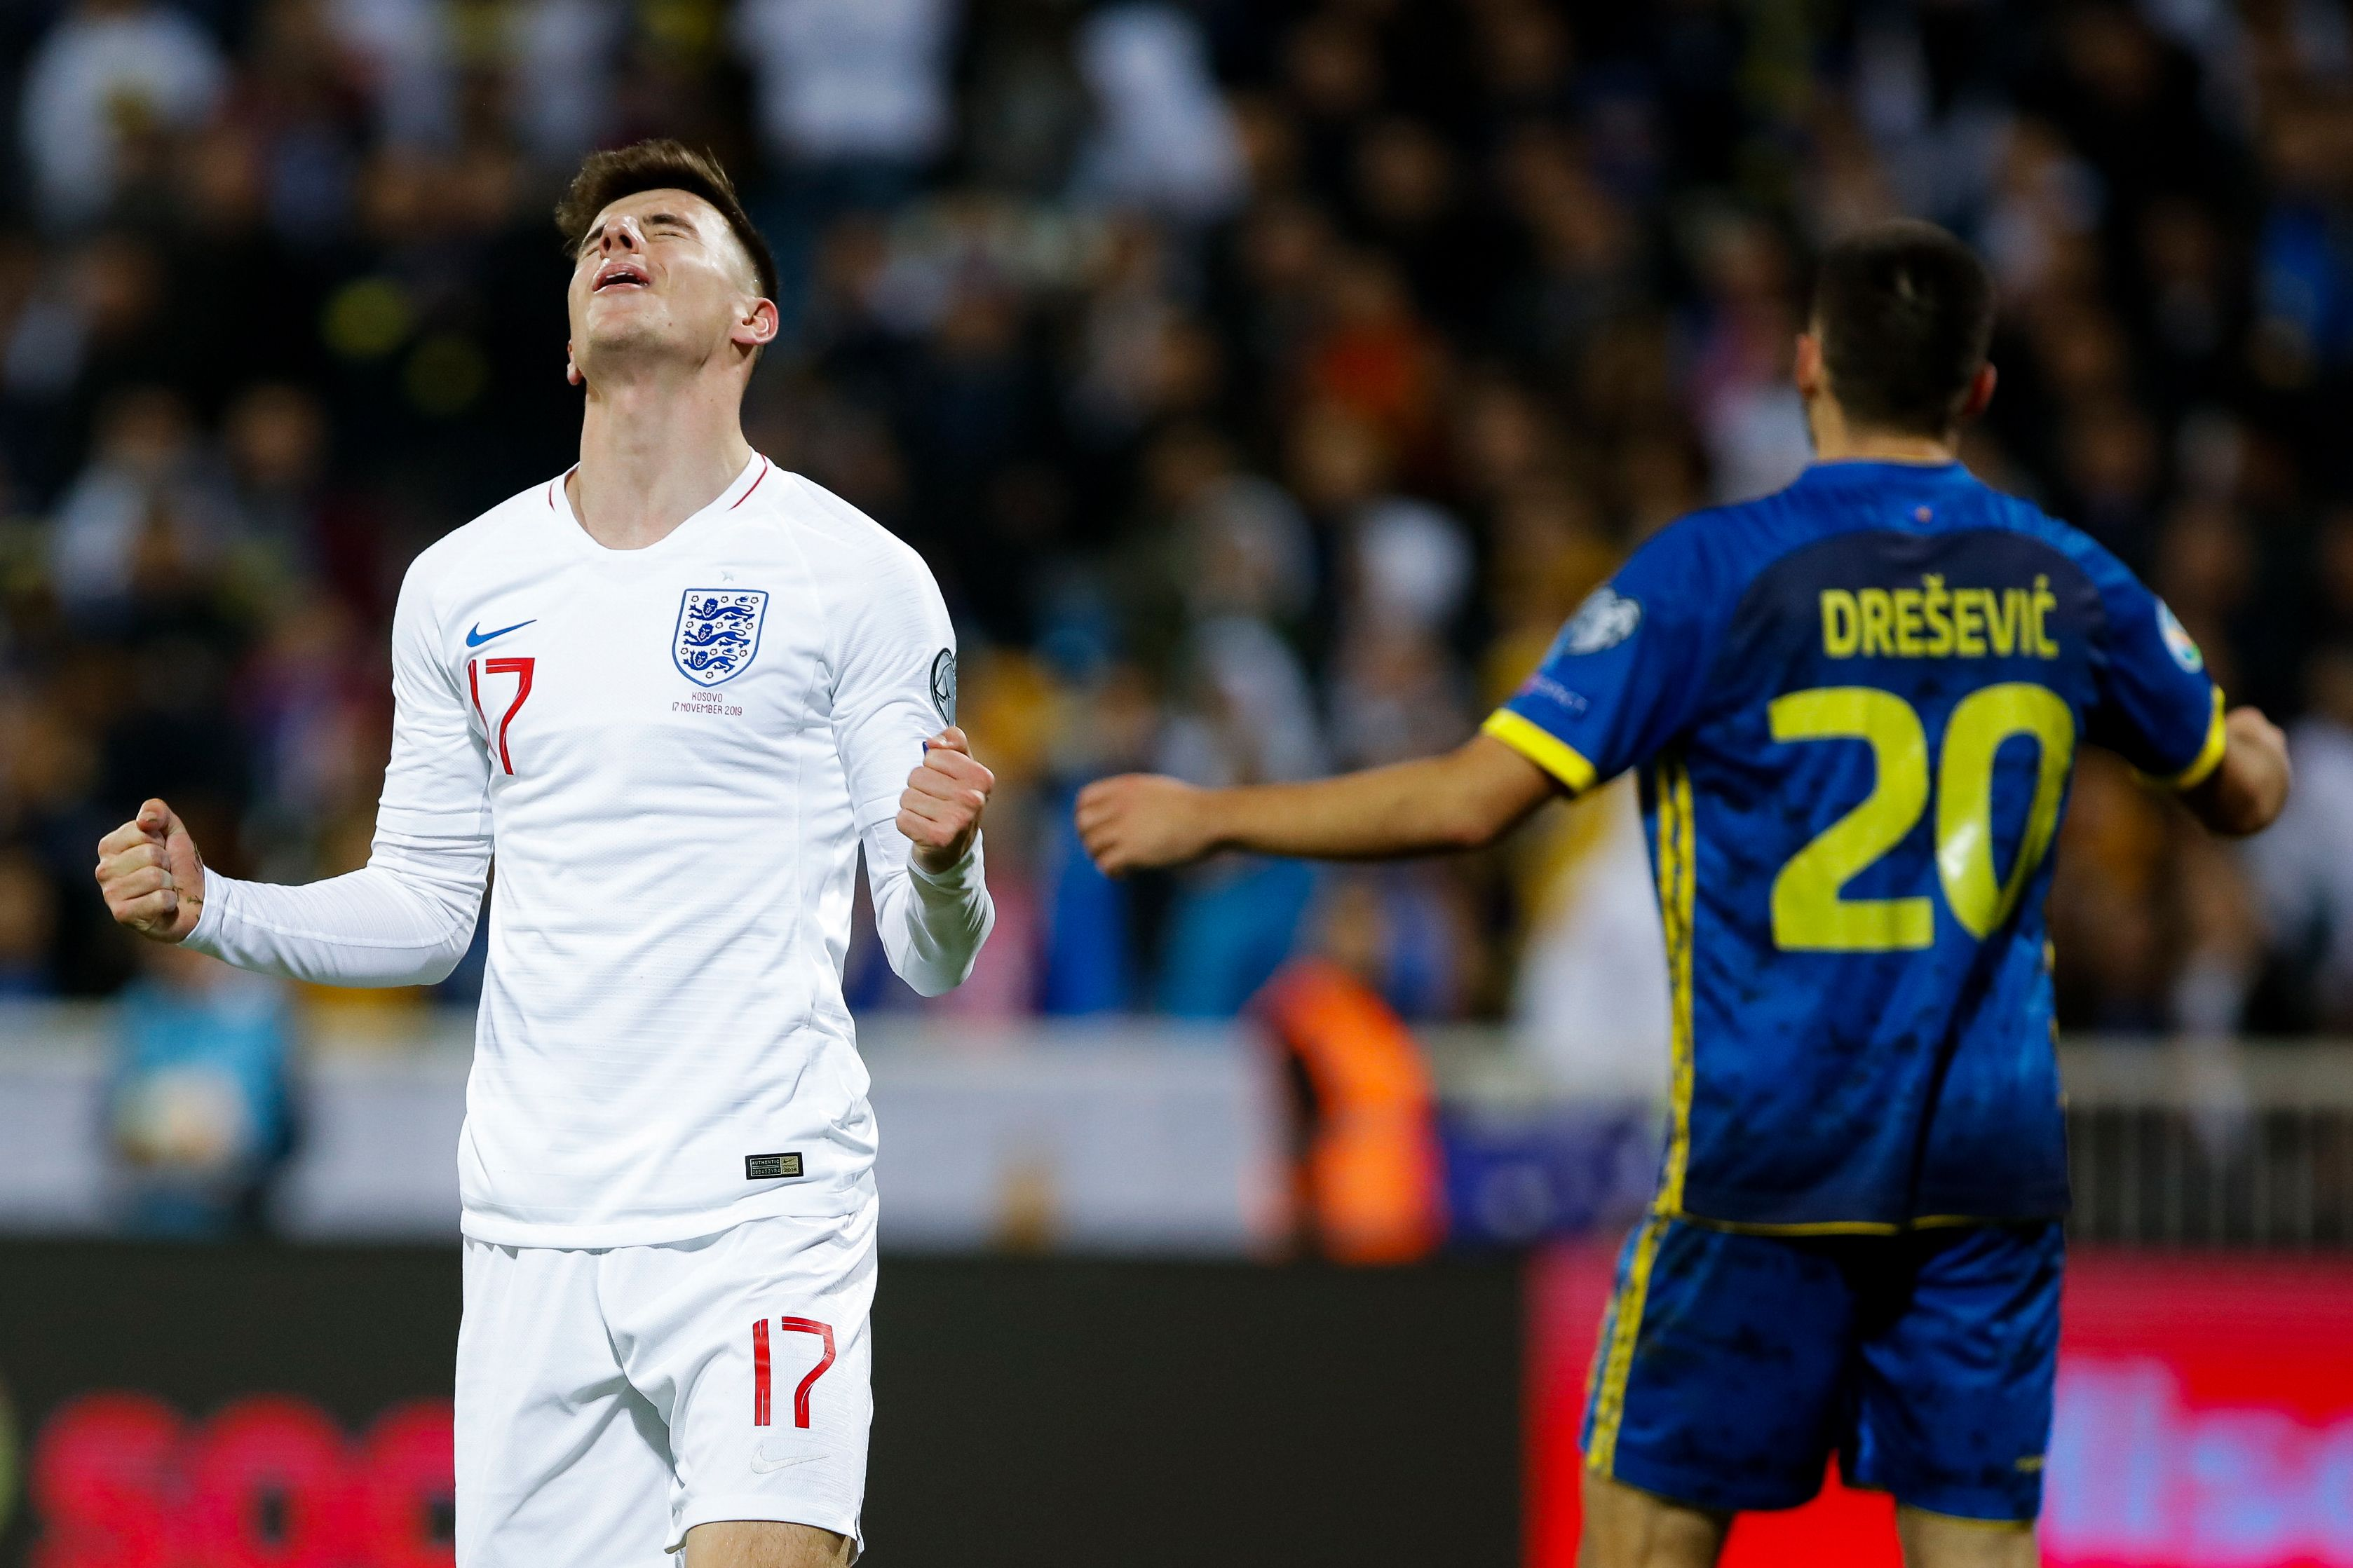 Mount scores as Tomori makes England debut; Kanté rested and not injured for France